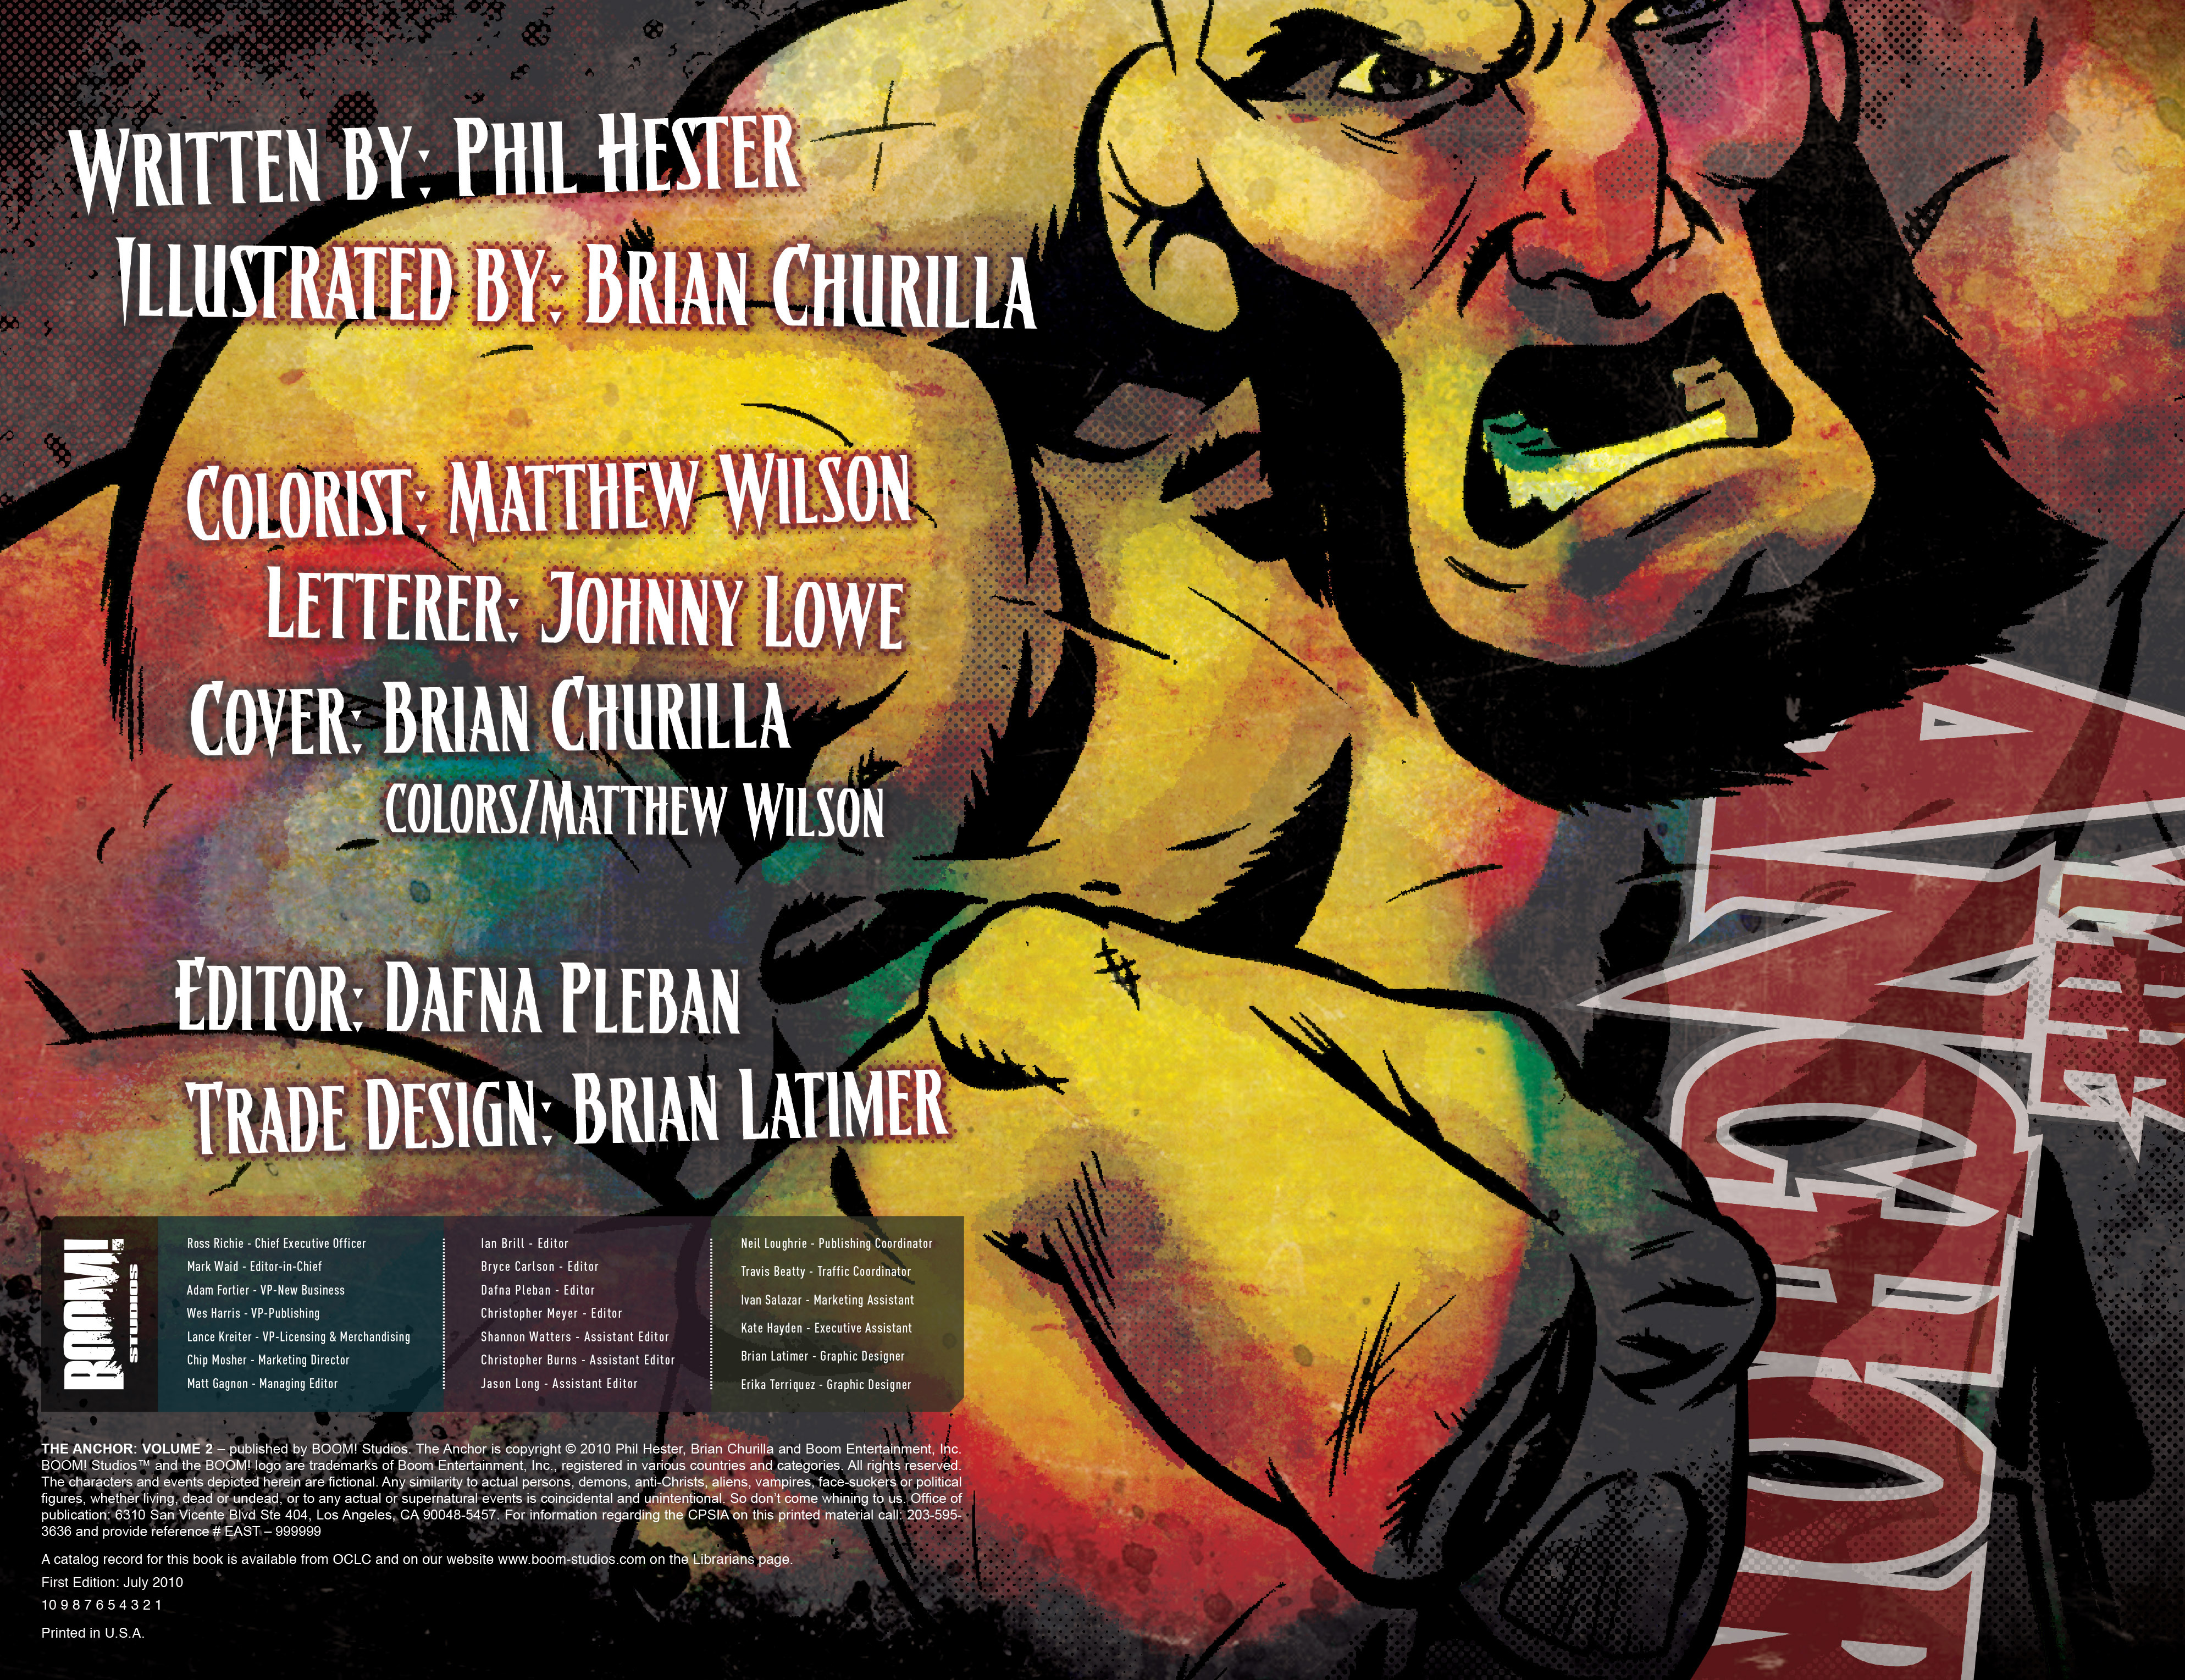 Read online The Anchor comic -  Issue # TPB 2 - 3